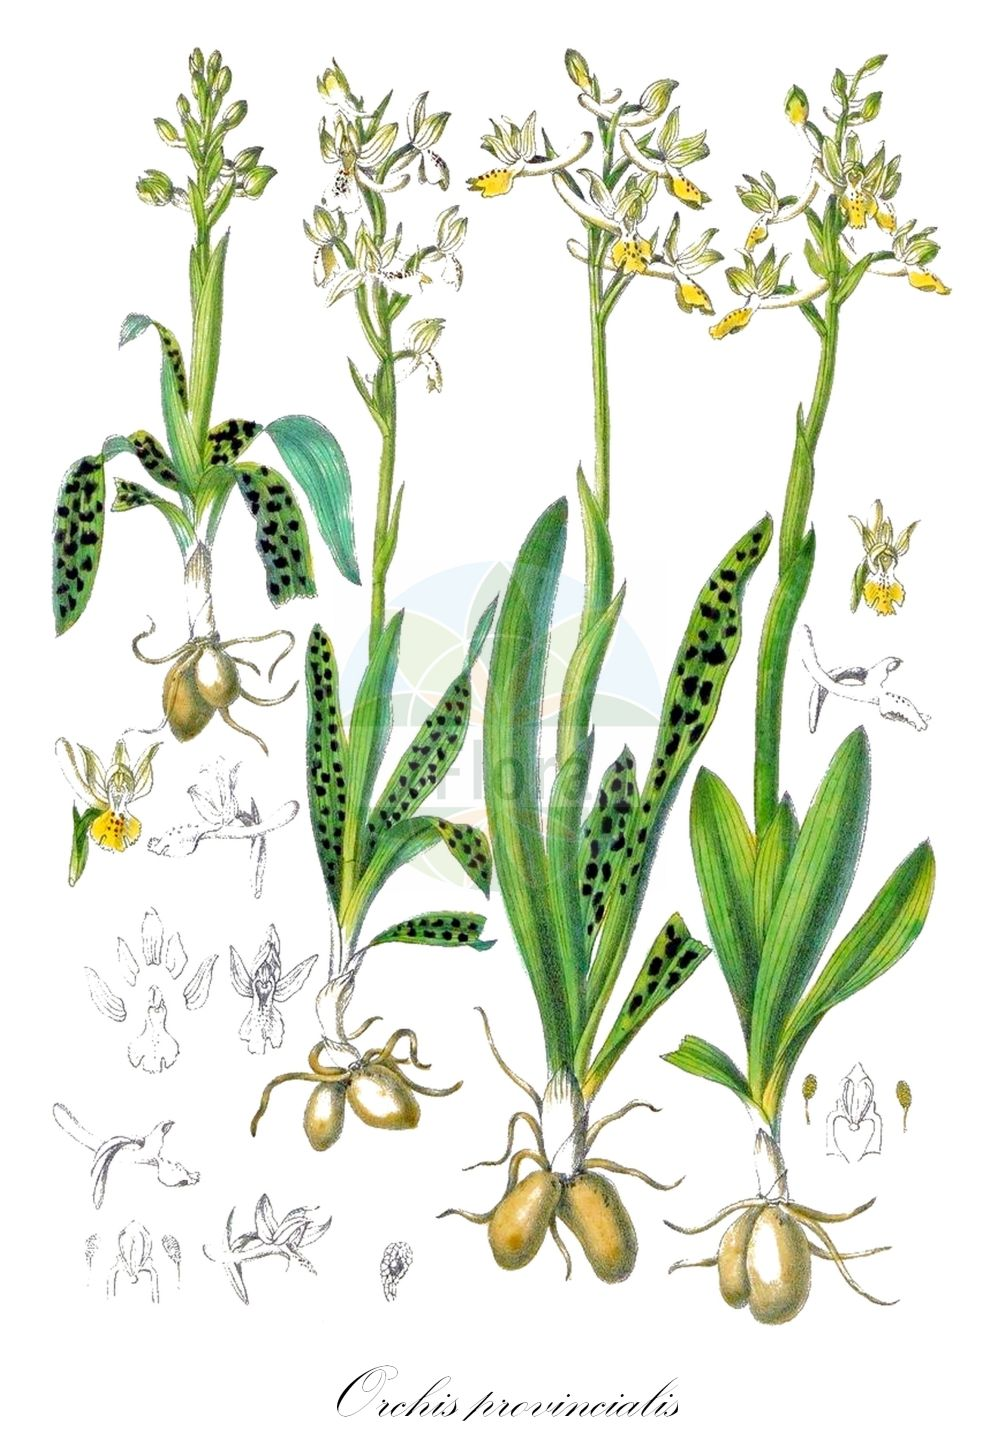 Historische Abbildung von Orchis provincialis. Das Bild zeigt Blatt, Bluete, Frucht und Same. ---- Historical Drawing of Orchis provincialis.The image is showing leaf, flower, fruit and seed.(Orchis provincialis,Androrchis provincialis,Orchis cyrilli,Orchis leucostachya,Orchis mascula,Orchis olbiensis,Orchis pallens,Orchis pseudopallens,Orchis,Knabenkraut,Orchidaceae,Knabenkrautgewaechse;Orchideen,Orchid family,Blatt,Bluete,Frucht,Same,leaf,flower,fruit,seed,Barla (1868))